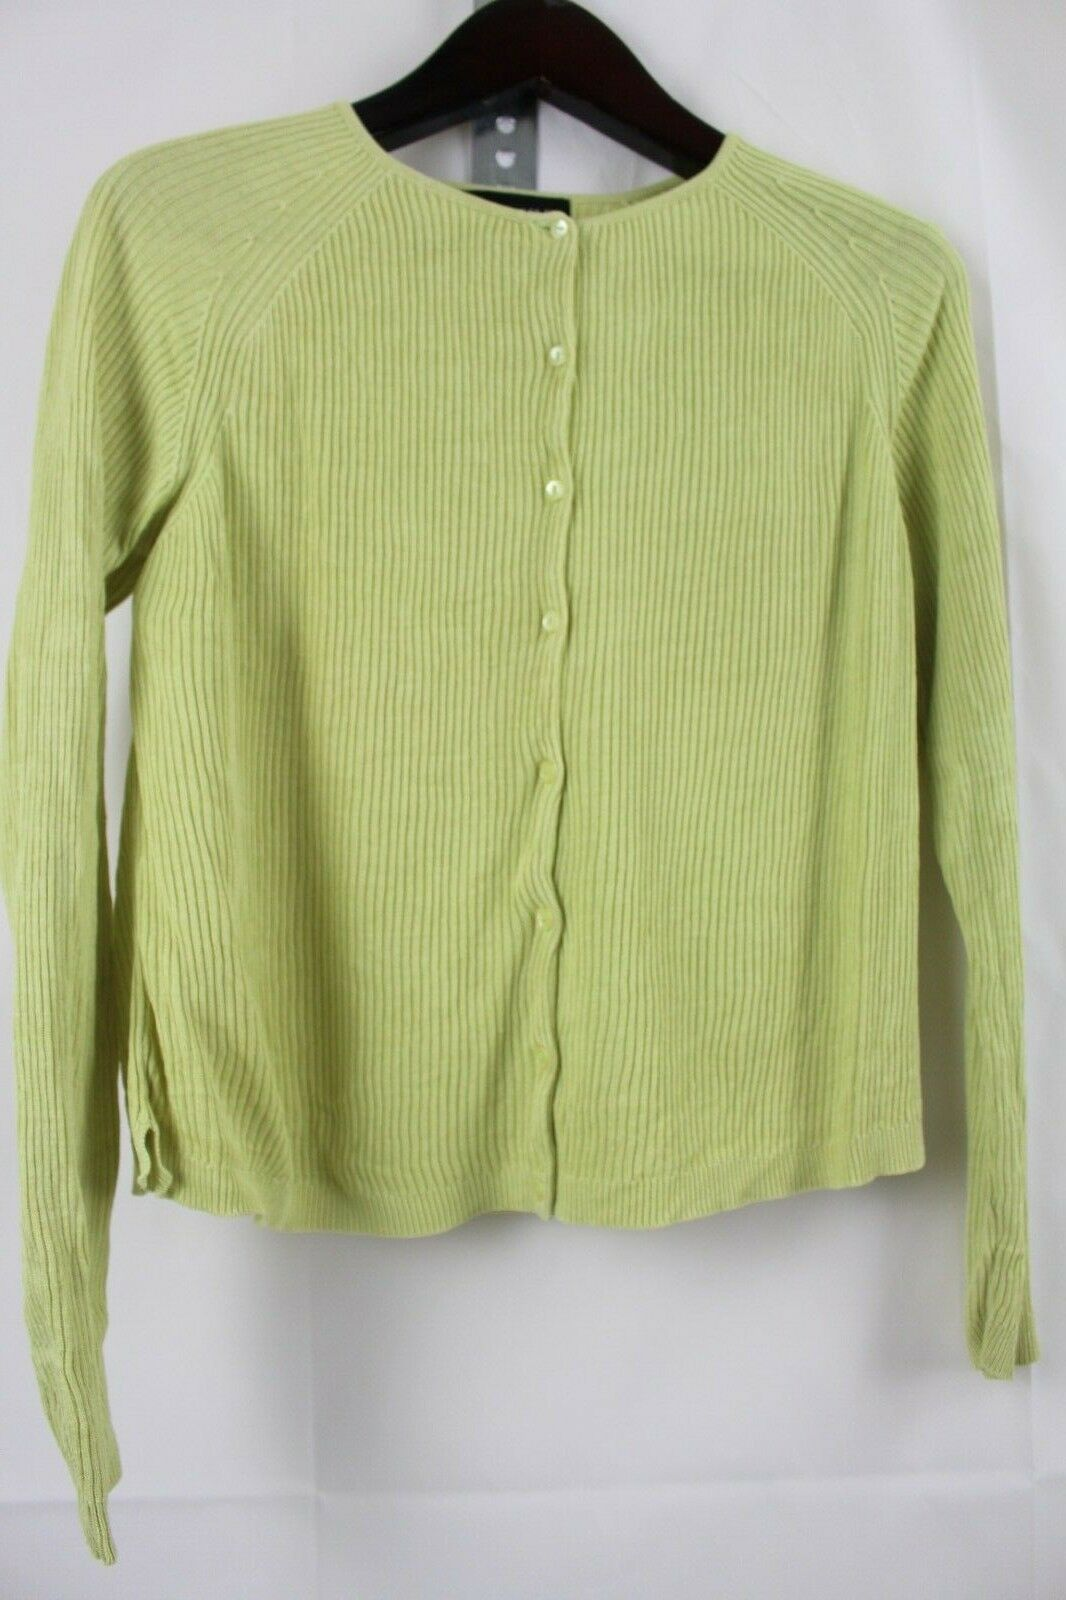 August Silk 100% Silk Green Button Down Cardigan Sweater Size - Large